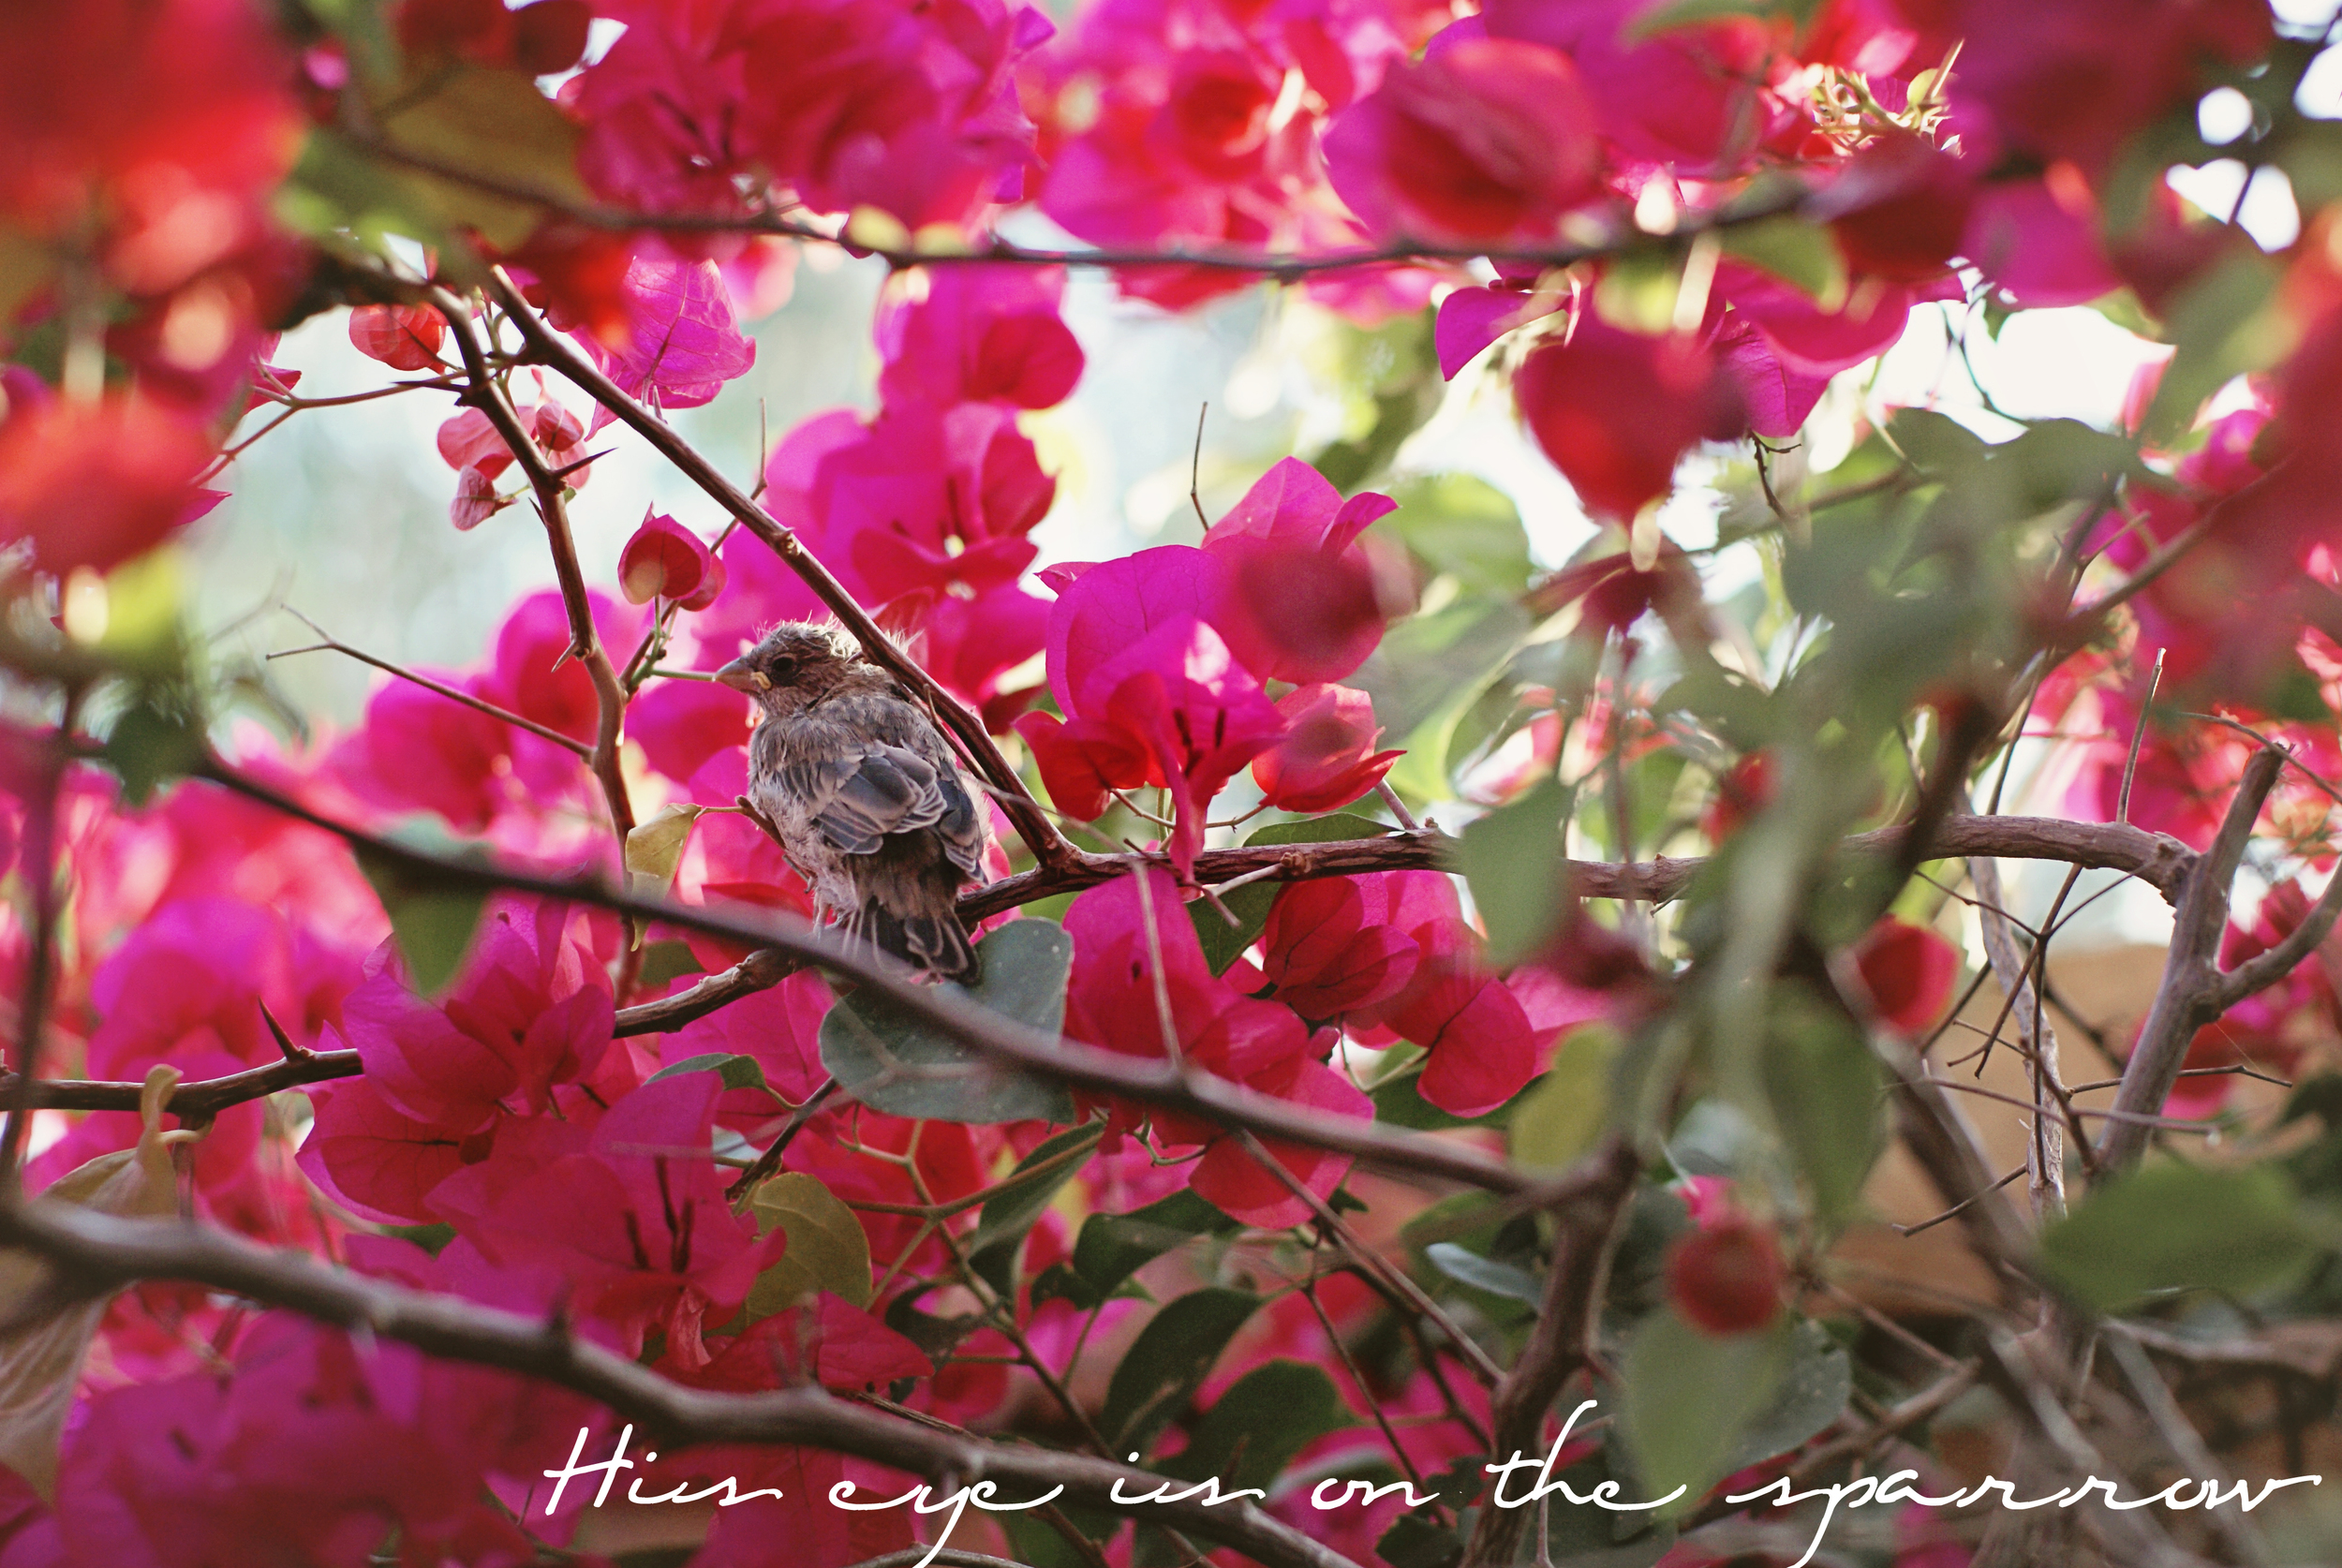 This little fledgling learned to fly in our backyard.  A chorus of birds sang notes of encouragement around it for days.  The mama watched close by.